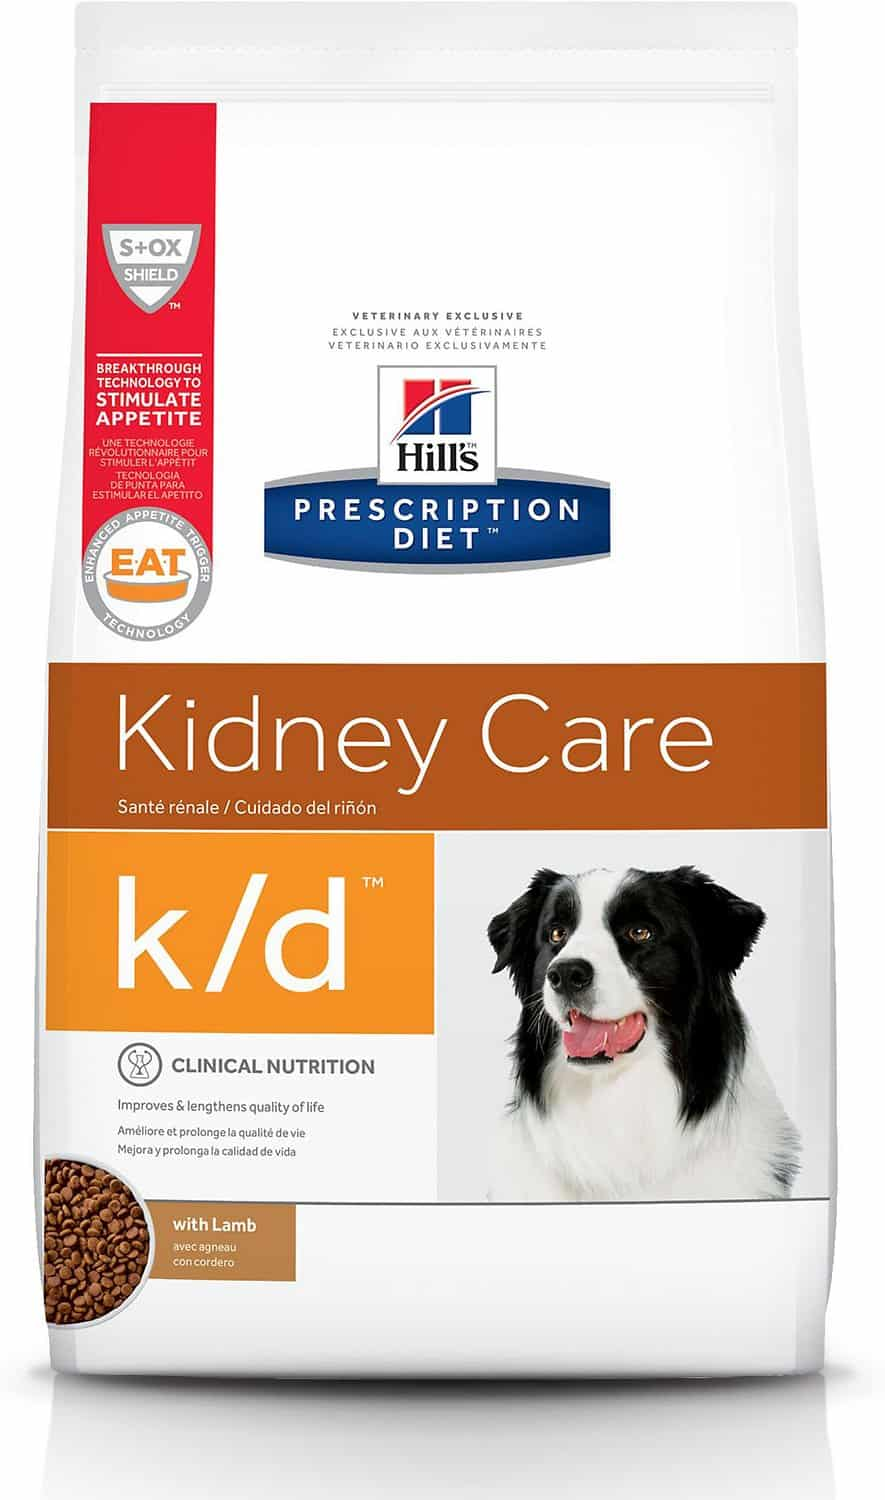 Best Dog Food for Seizures: Help Prevent Seizures with the Right Diet 19